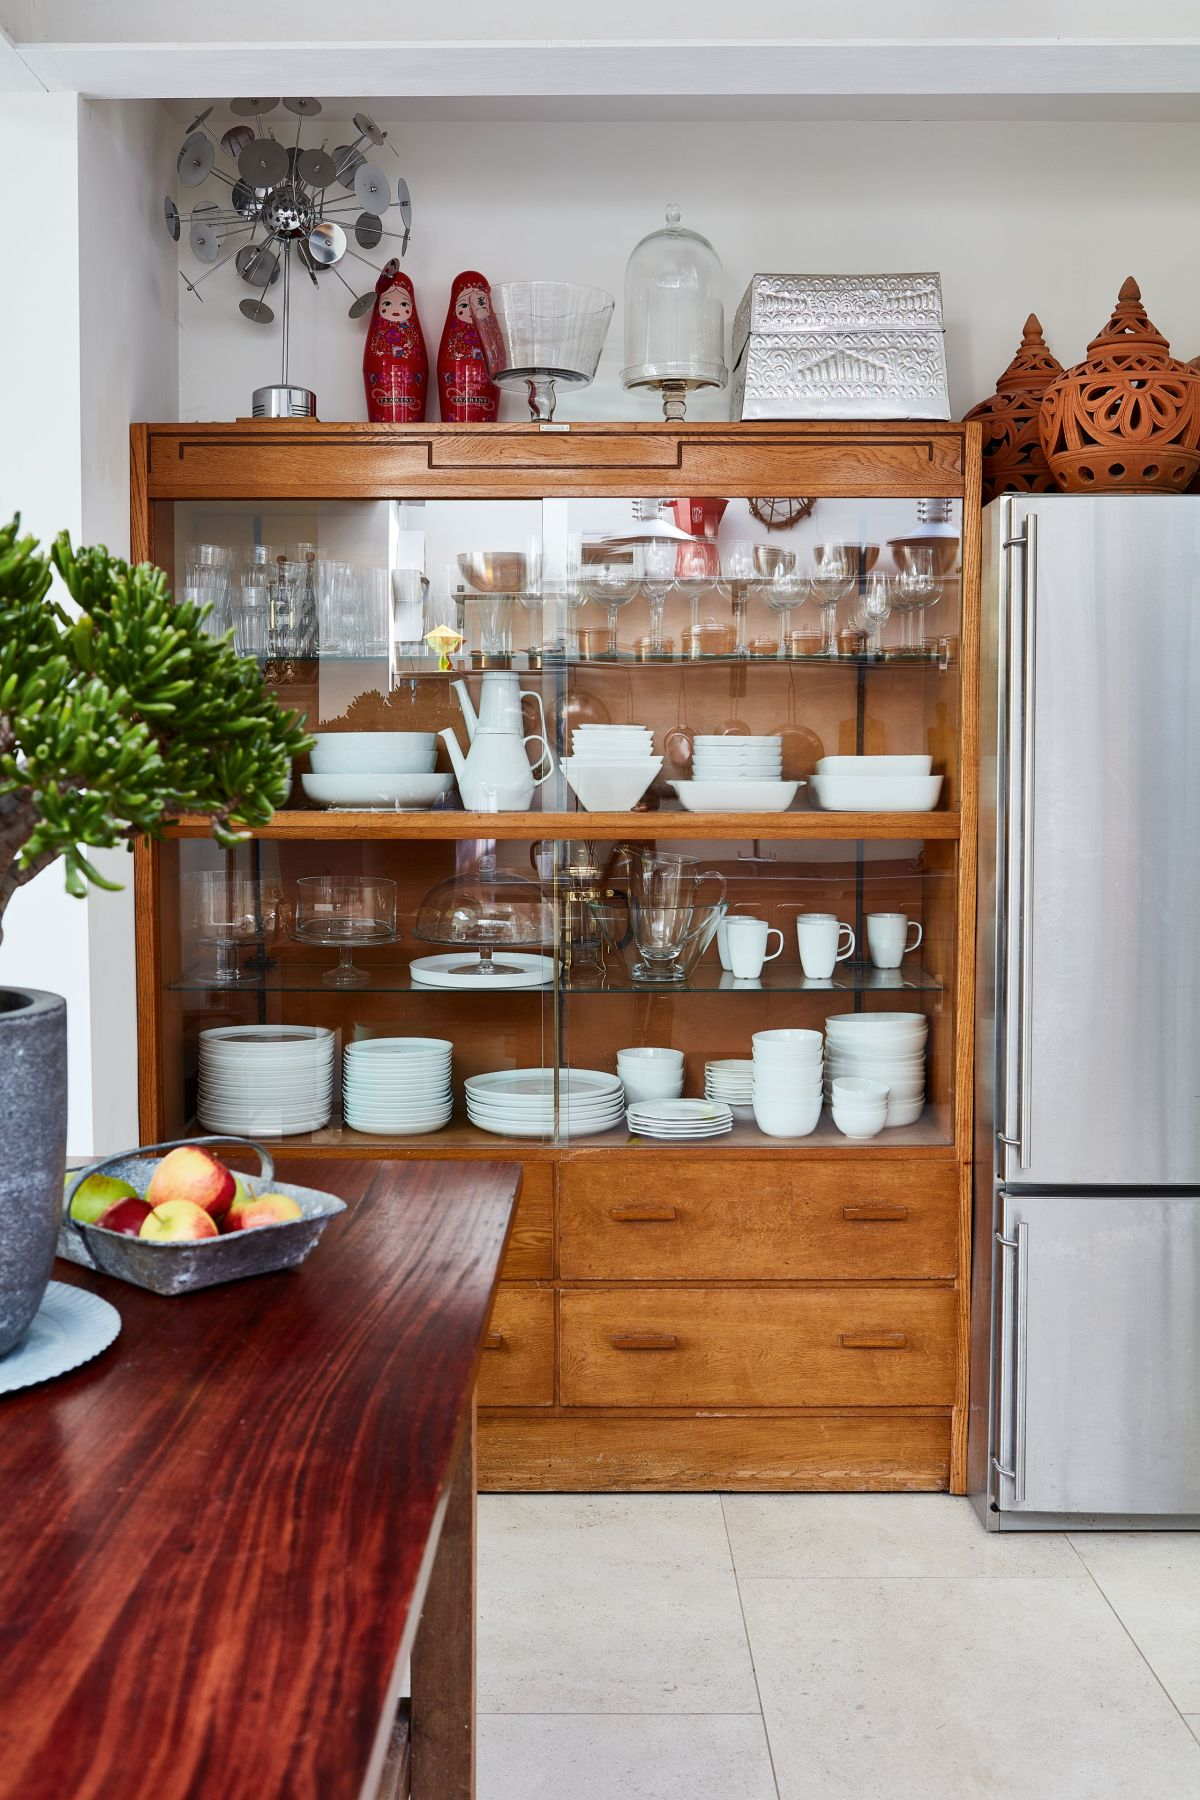 Kitchen Storage Ideas 27 Clever Solutions To Clear The Clutter Real Homes